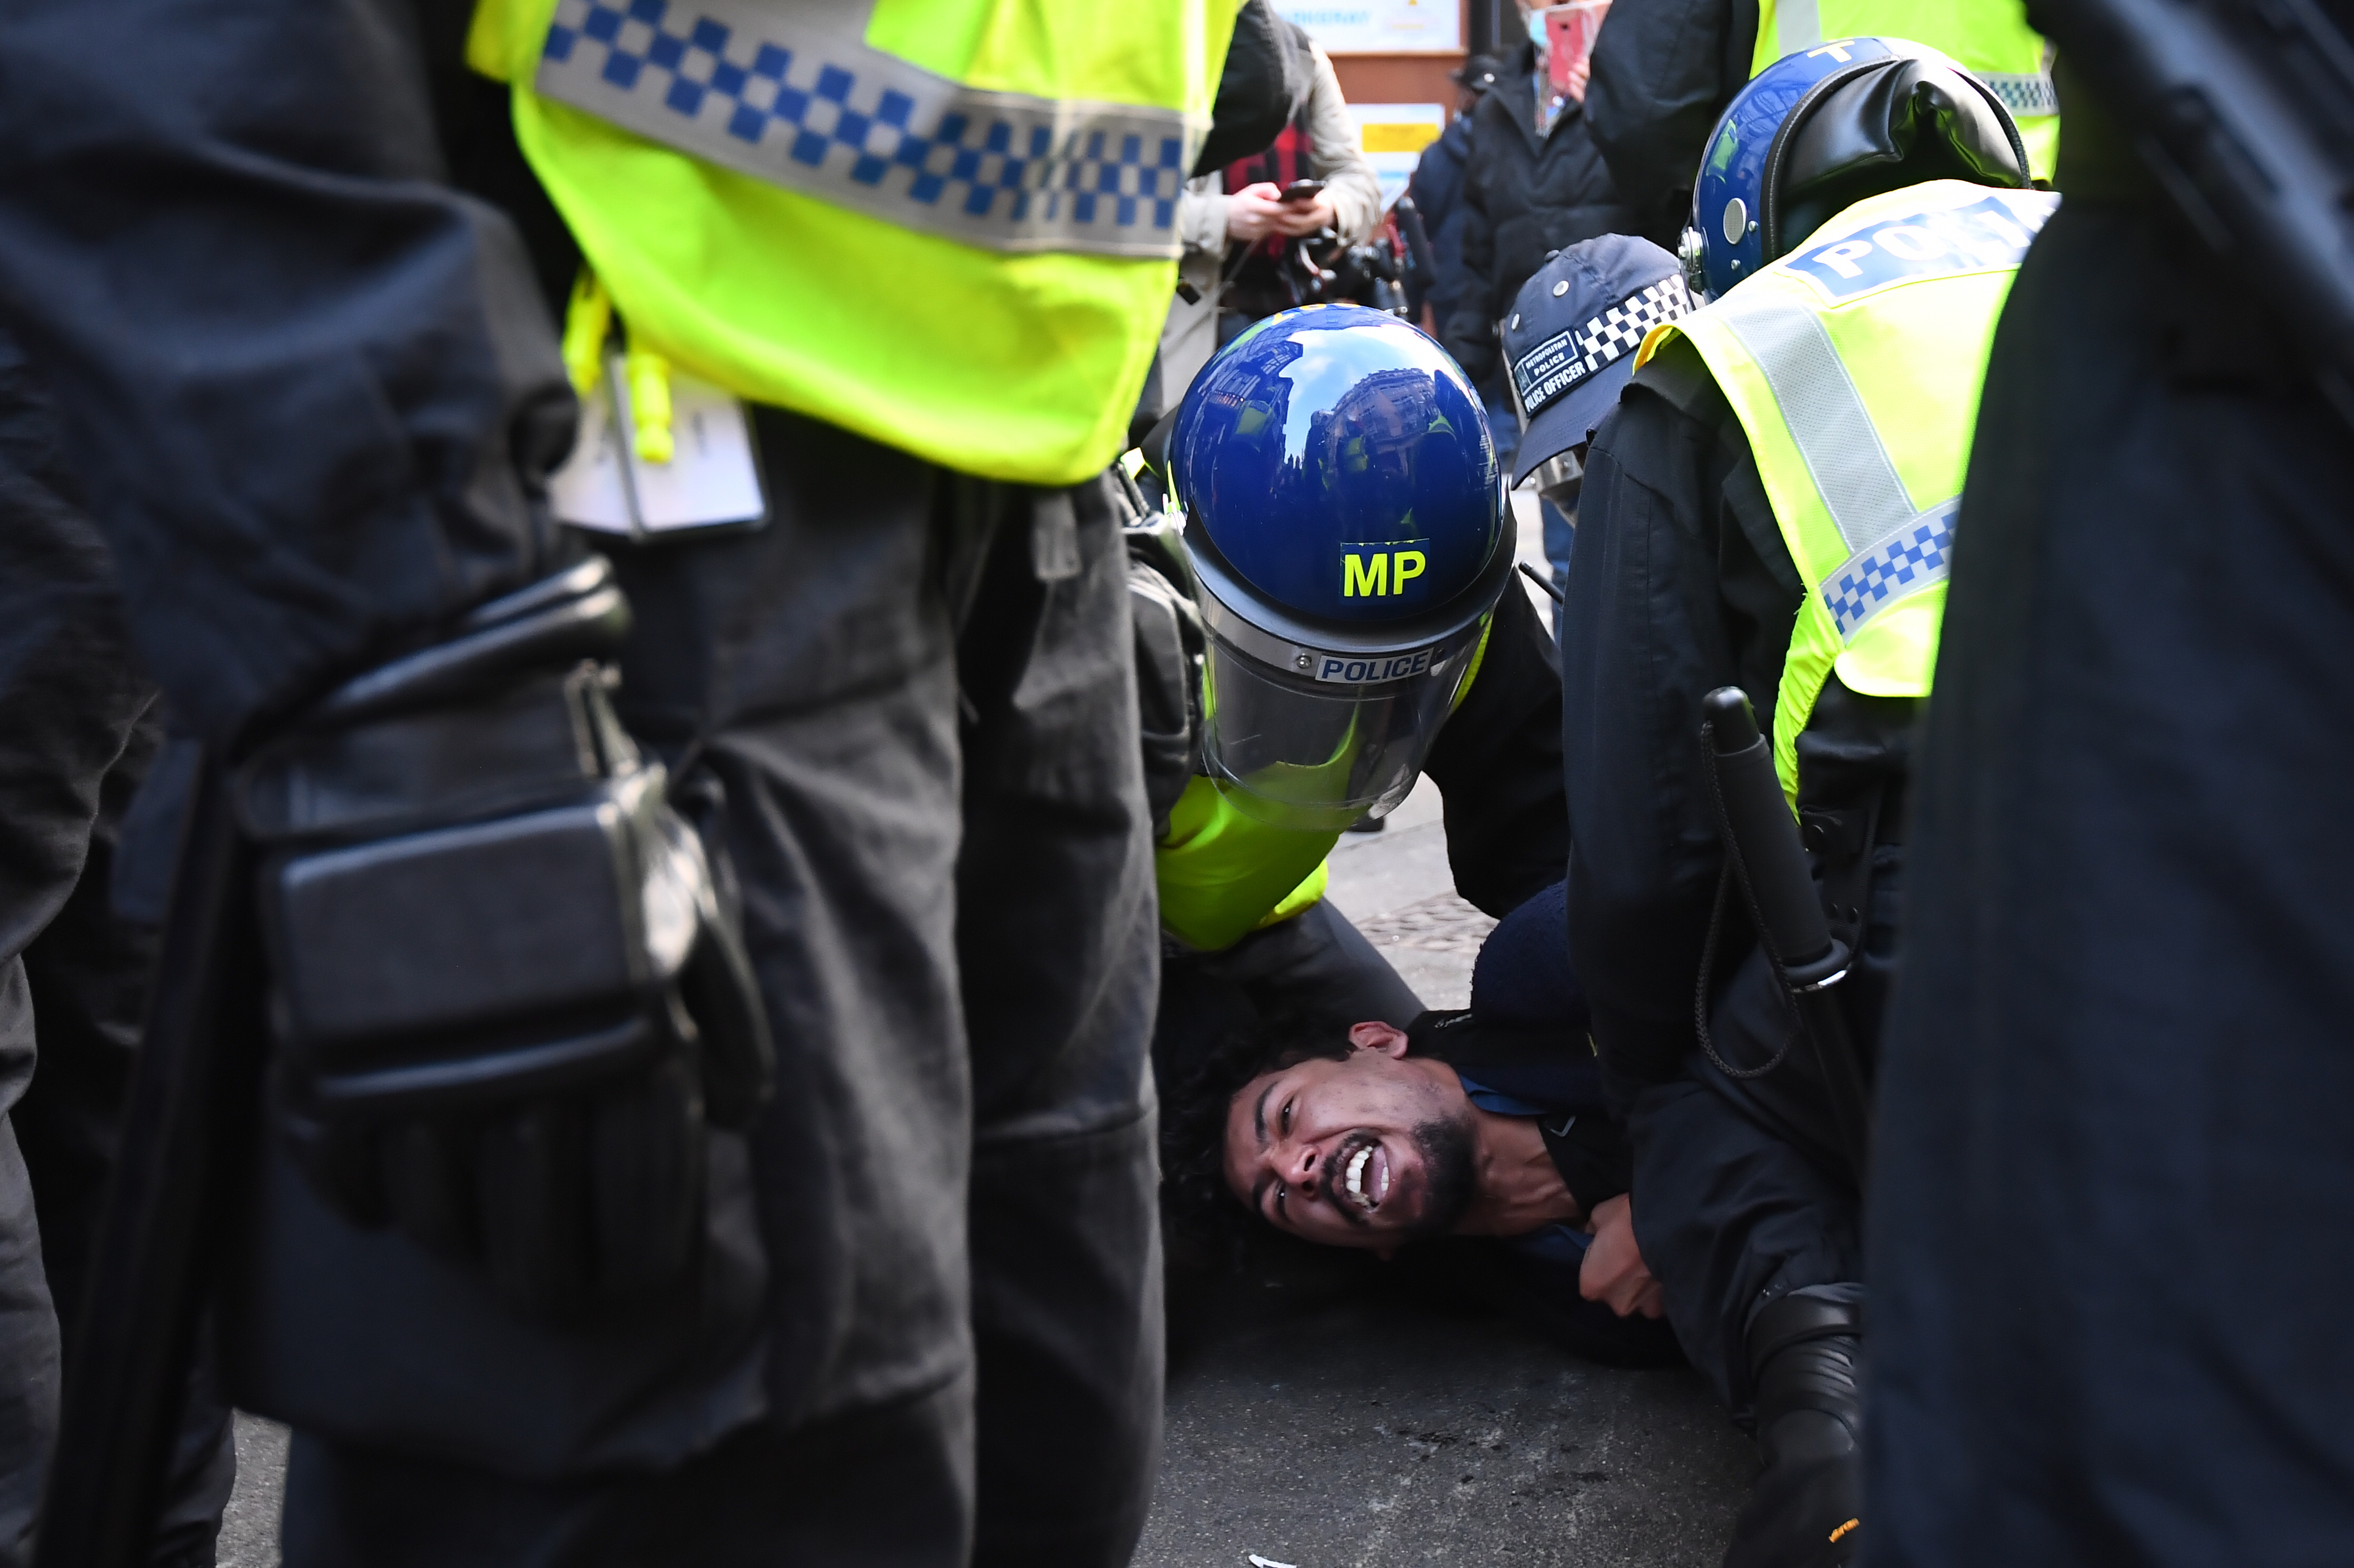 Police detain a man during an anti-lockdown protest at Oxford Circus, London. (Photo by Victoria Jones/PA Images via Getty Images)